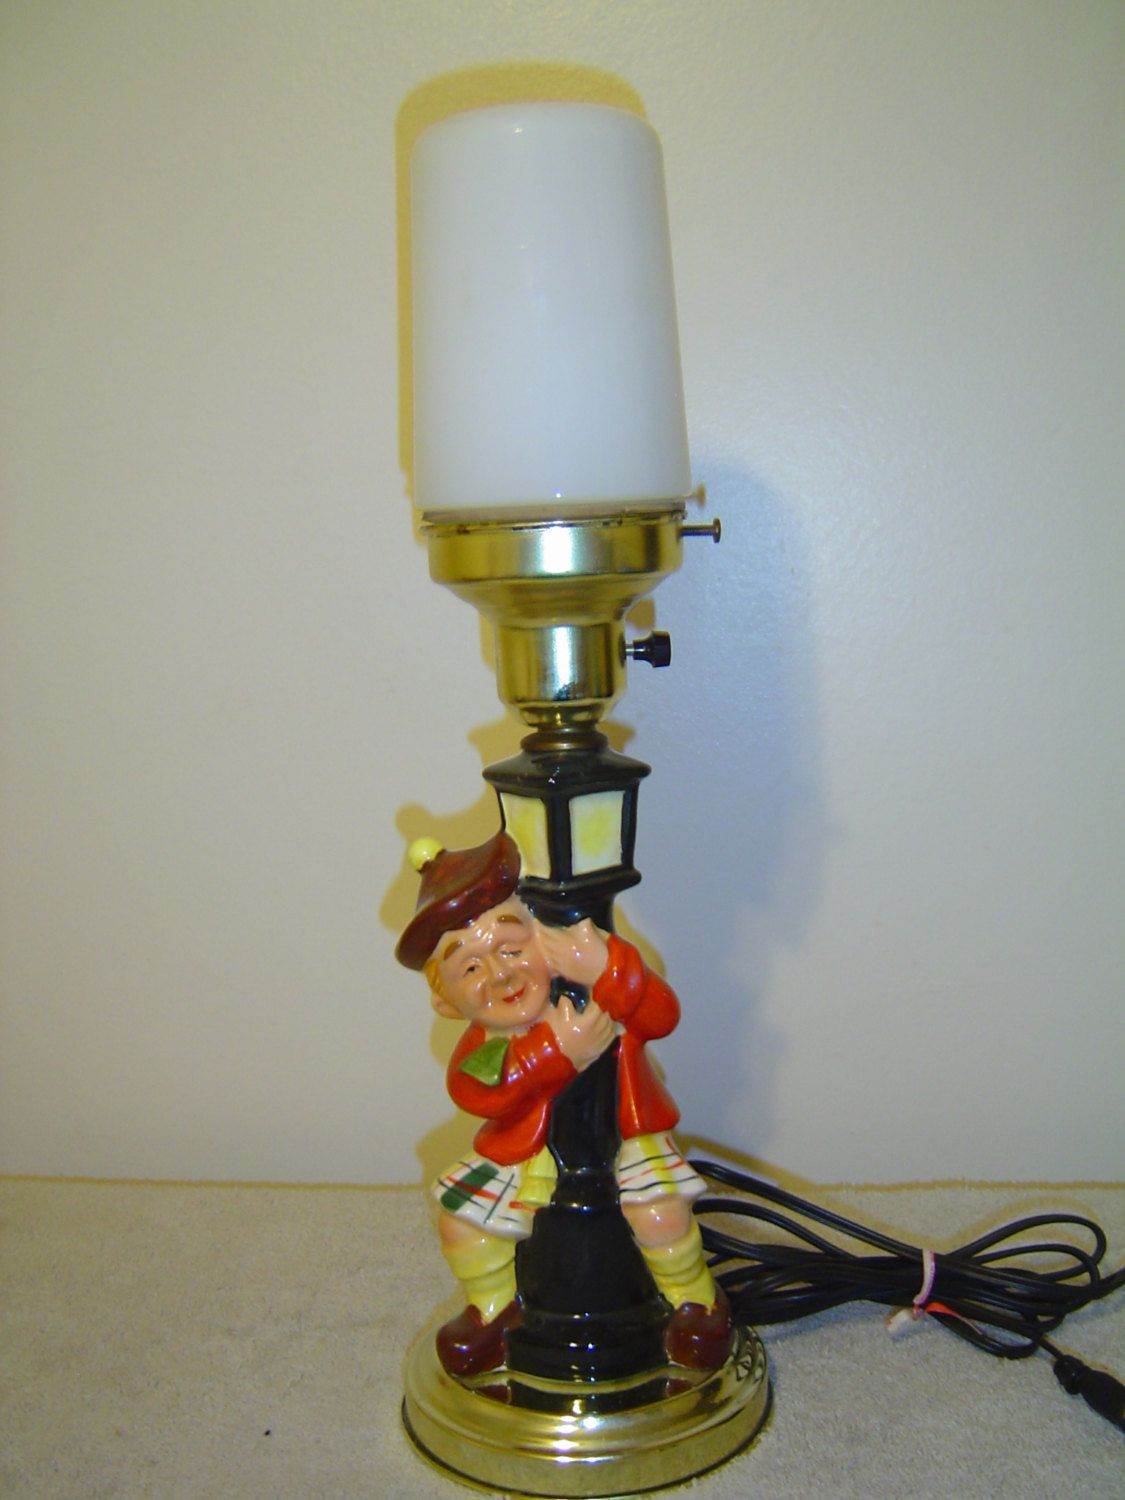 Bar Lamp With Scottish Man Vintage Drunk Hobo Clings To